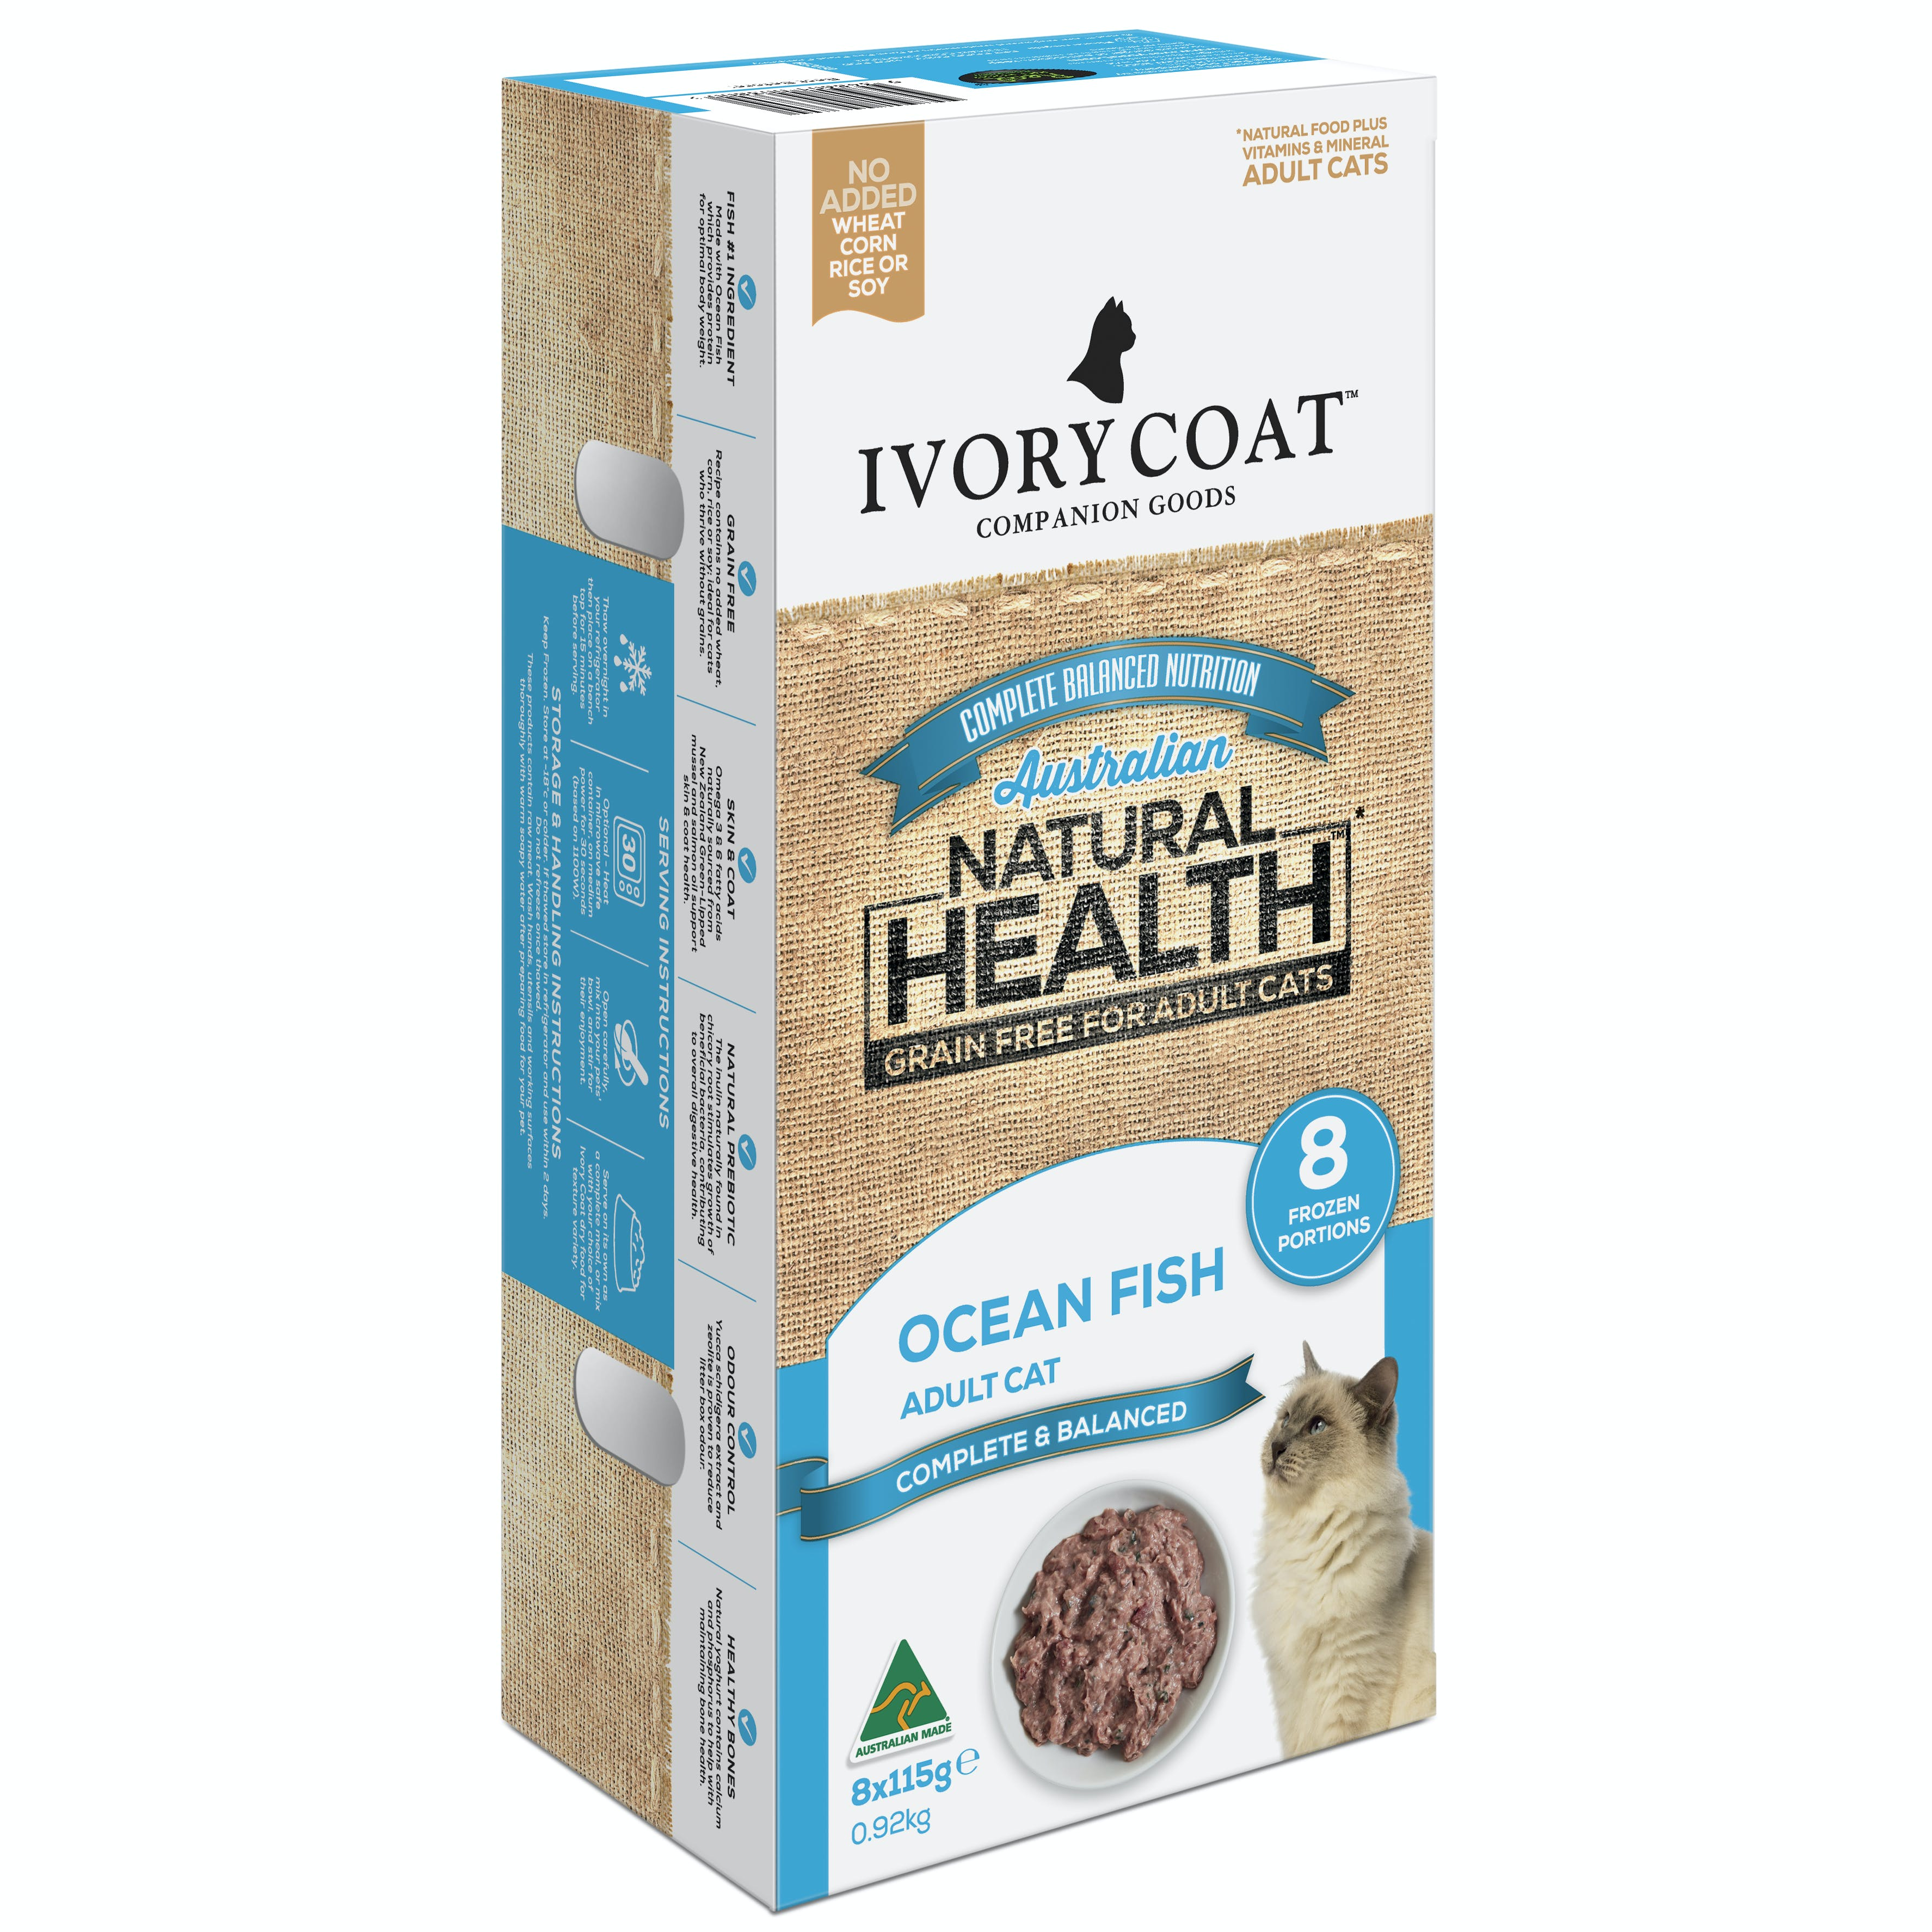 Ivory Coat | Adult Cat Frozen Portions Grain Free Ocean Fish 8 x 115g | Grain Free Chilled Cat Food | Front of pack